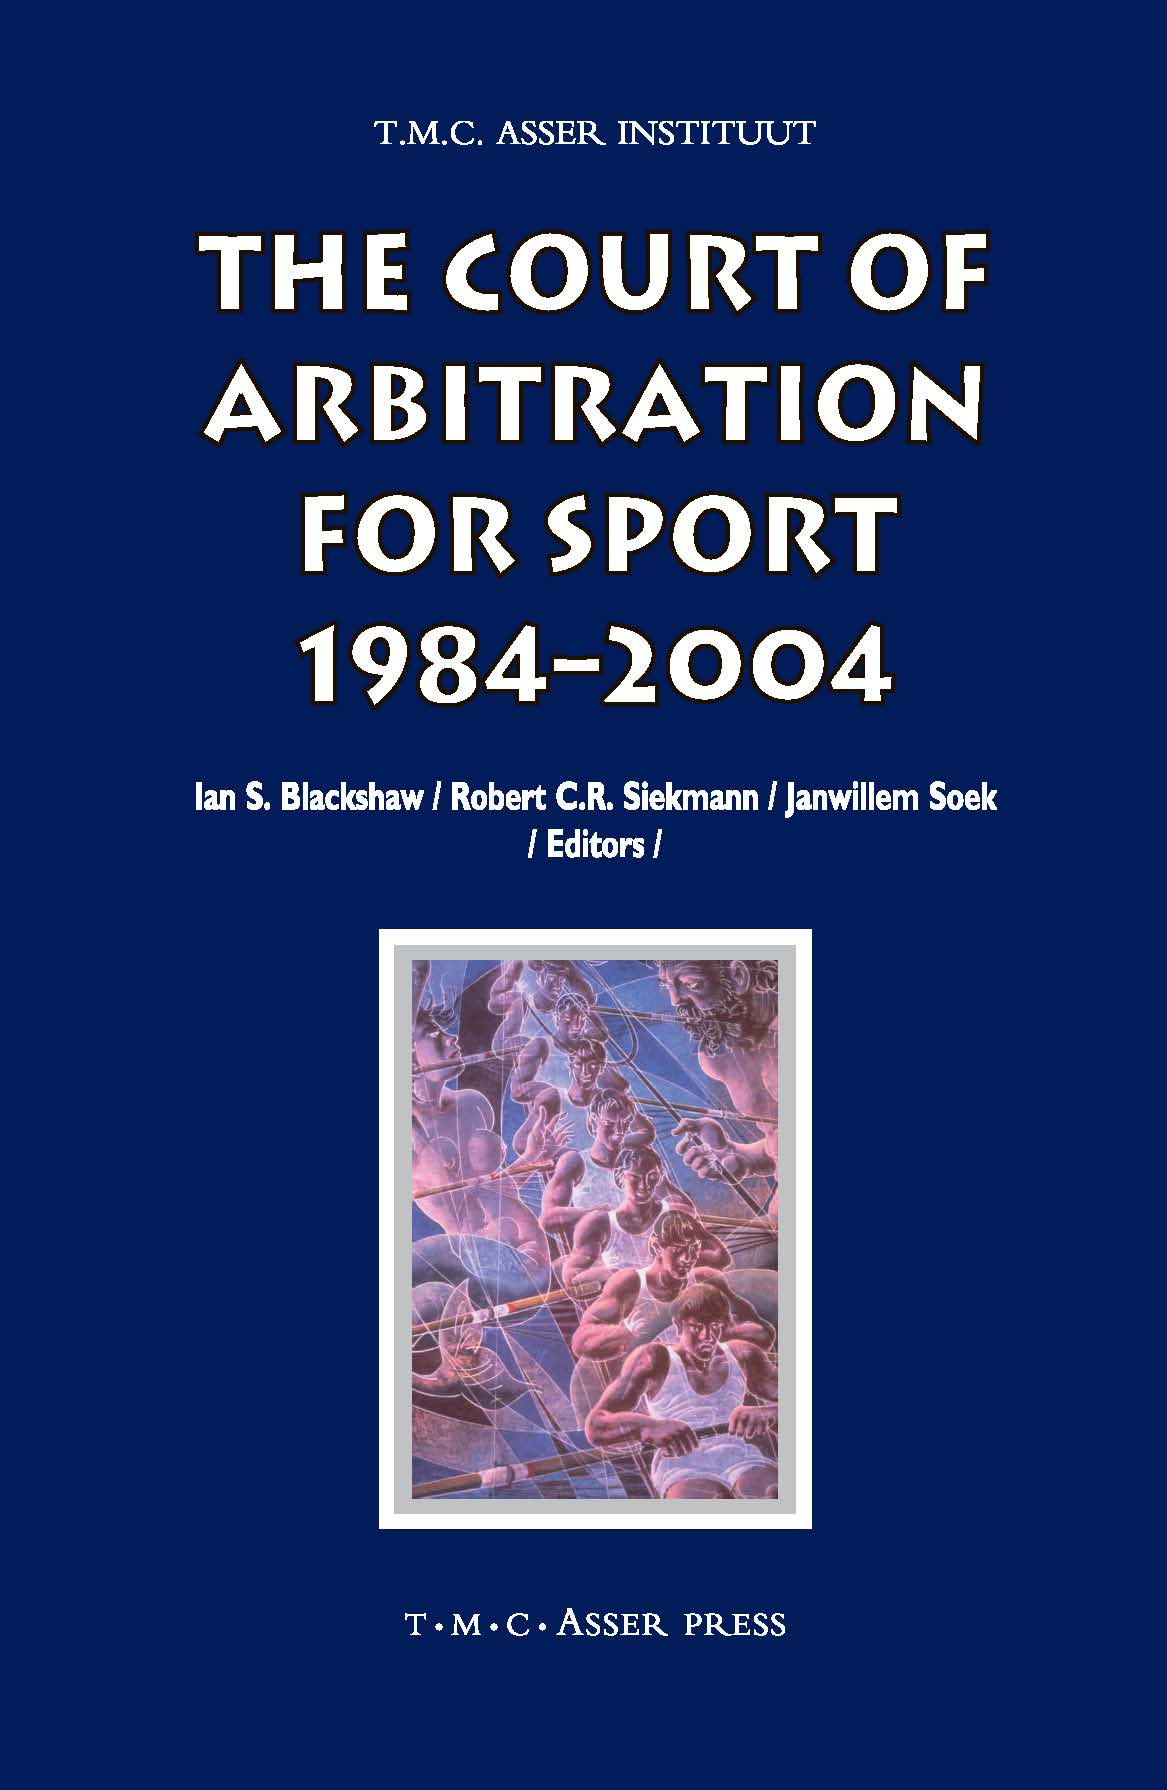 The Court of Arbitration for Sport 1984–2004